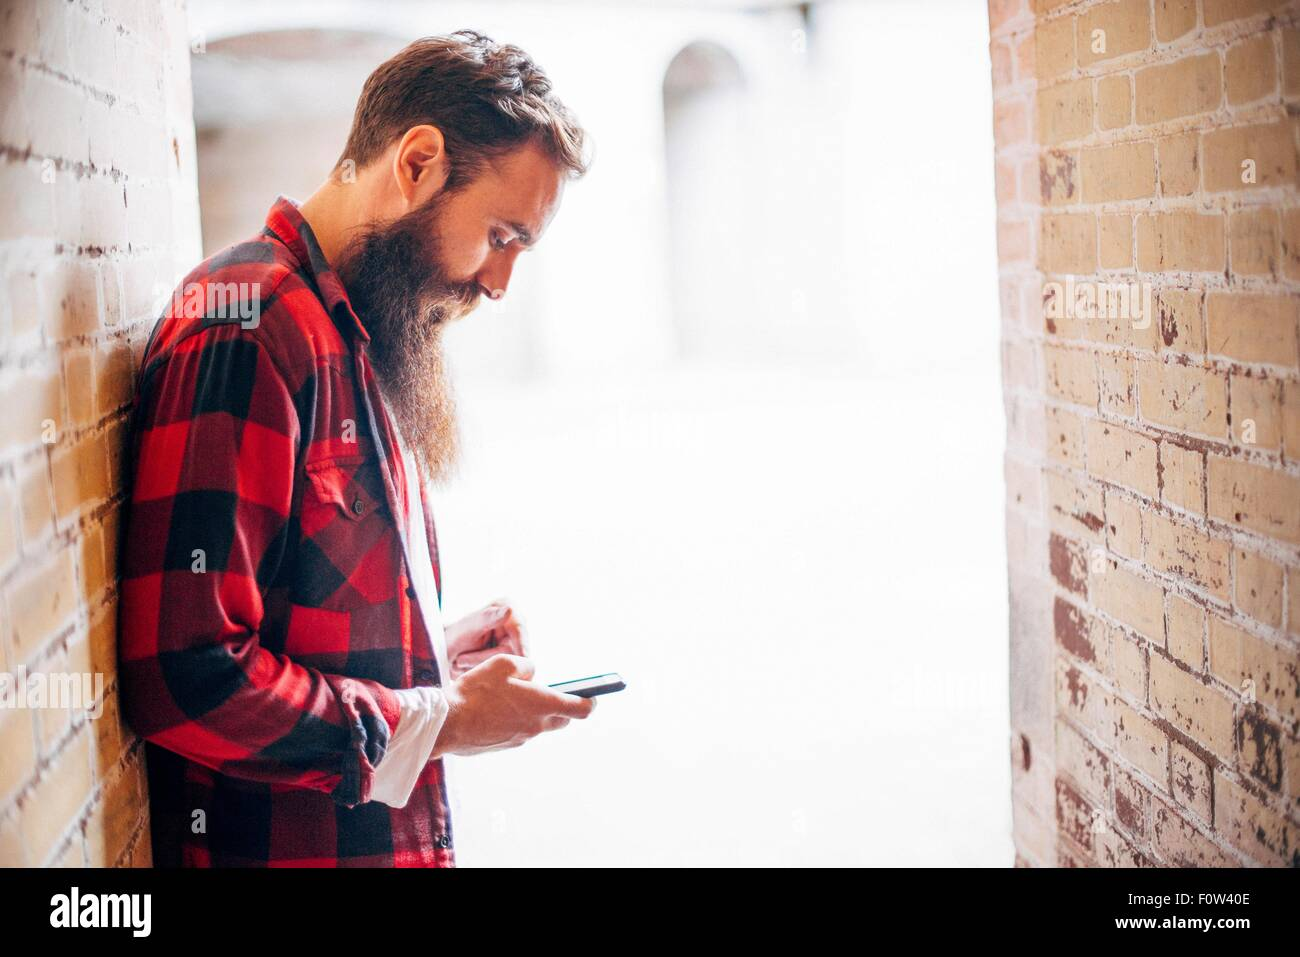 Side view of man with beard holding smartphone - Stock Image